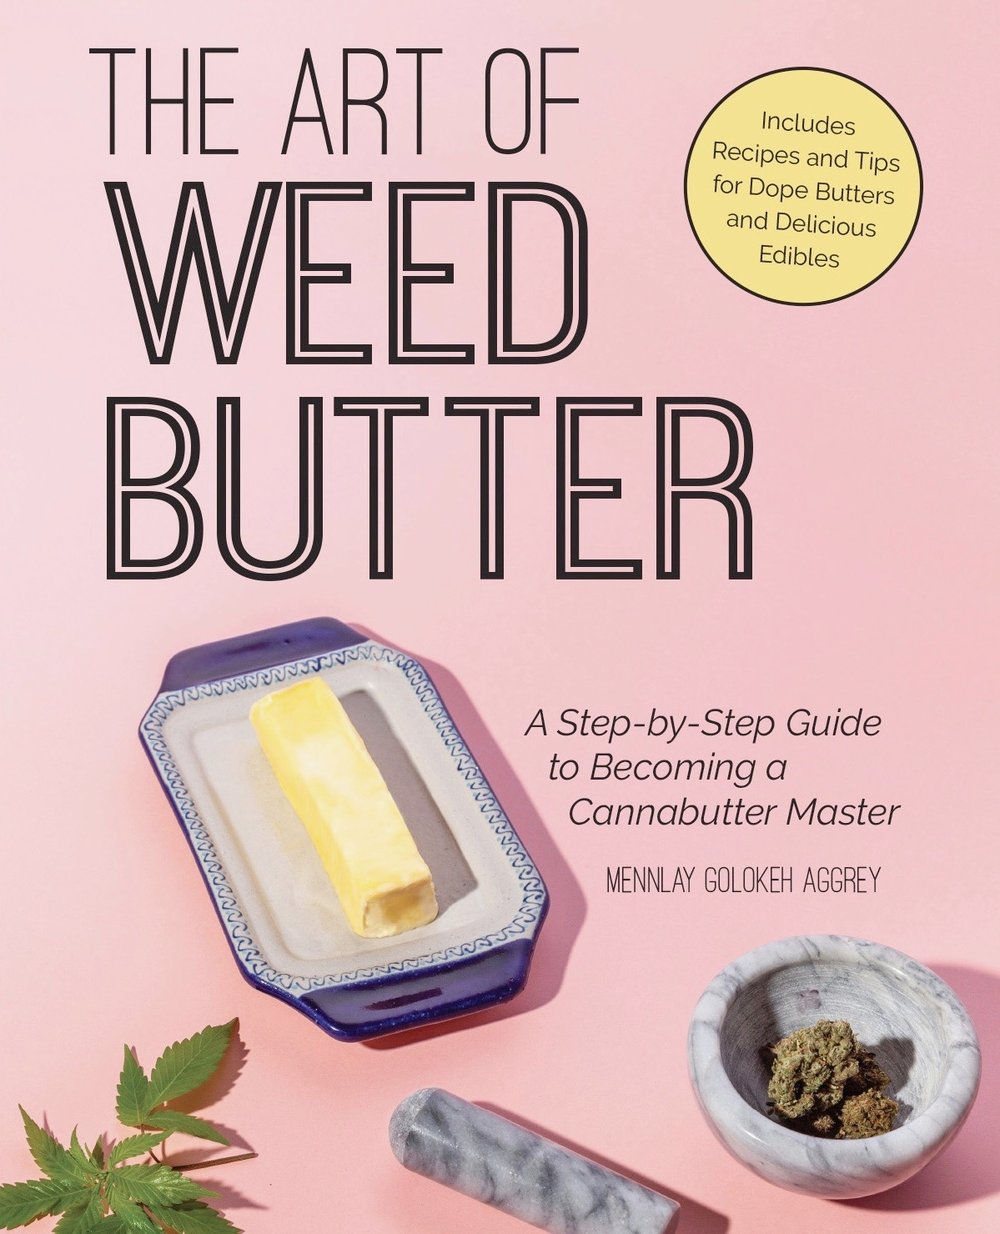 The Art of Weed Butter: A Step-By-Step Guide to Becoming a Cannabutter Master by Mennlay Golokeh Aggrey